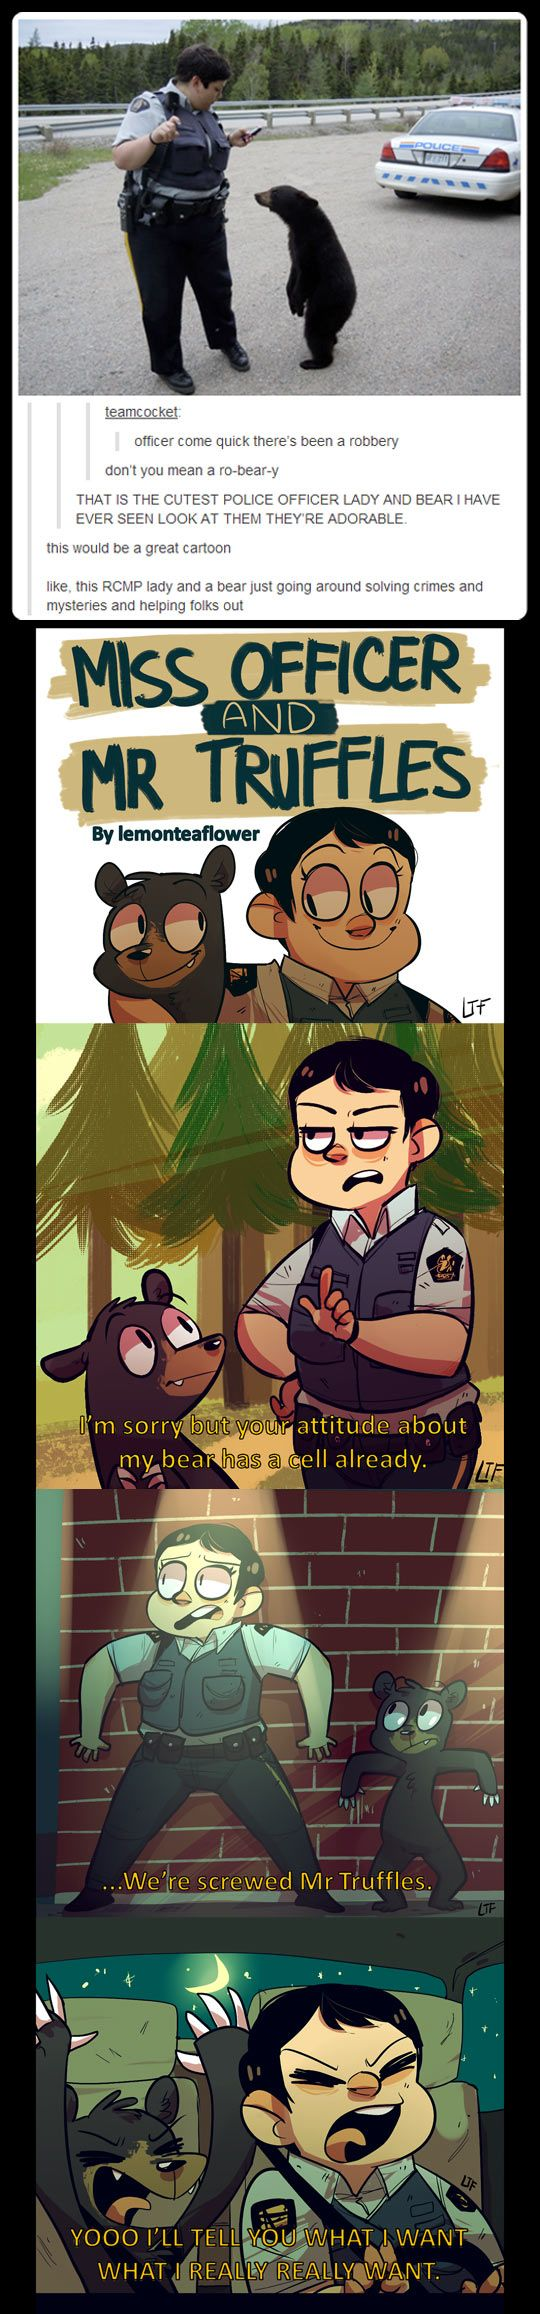 Miss Officer and Mr Truffles. I pinned this before, but I just